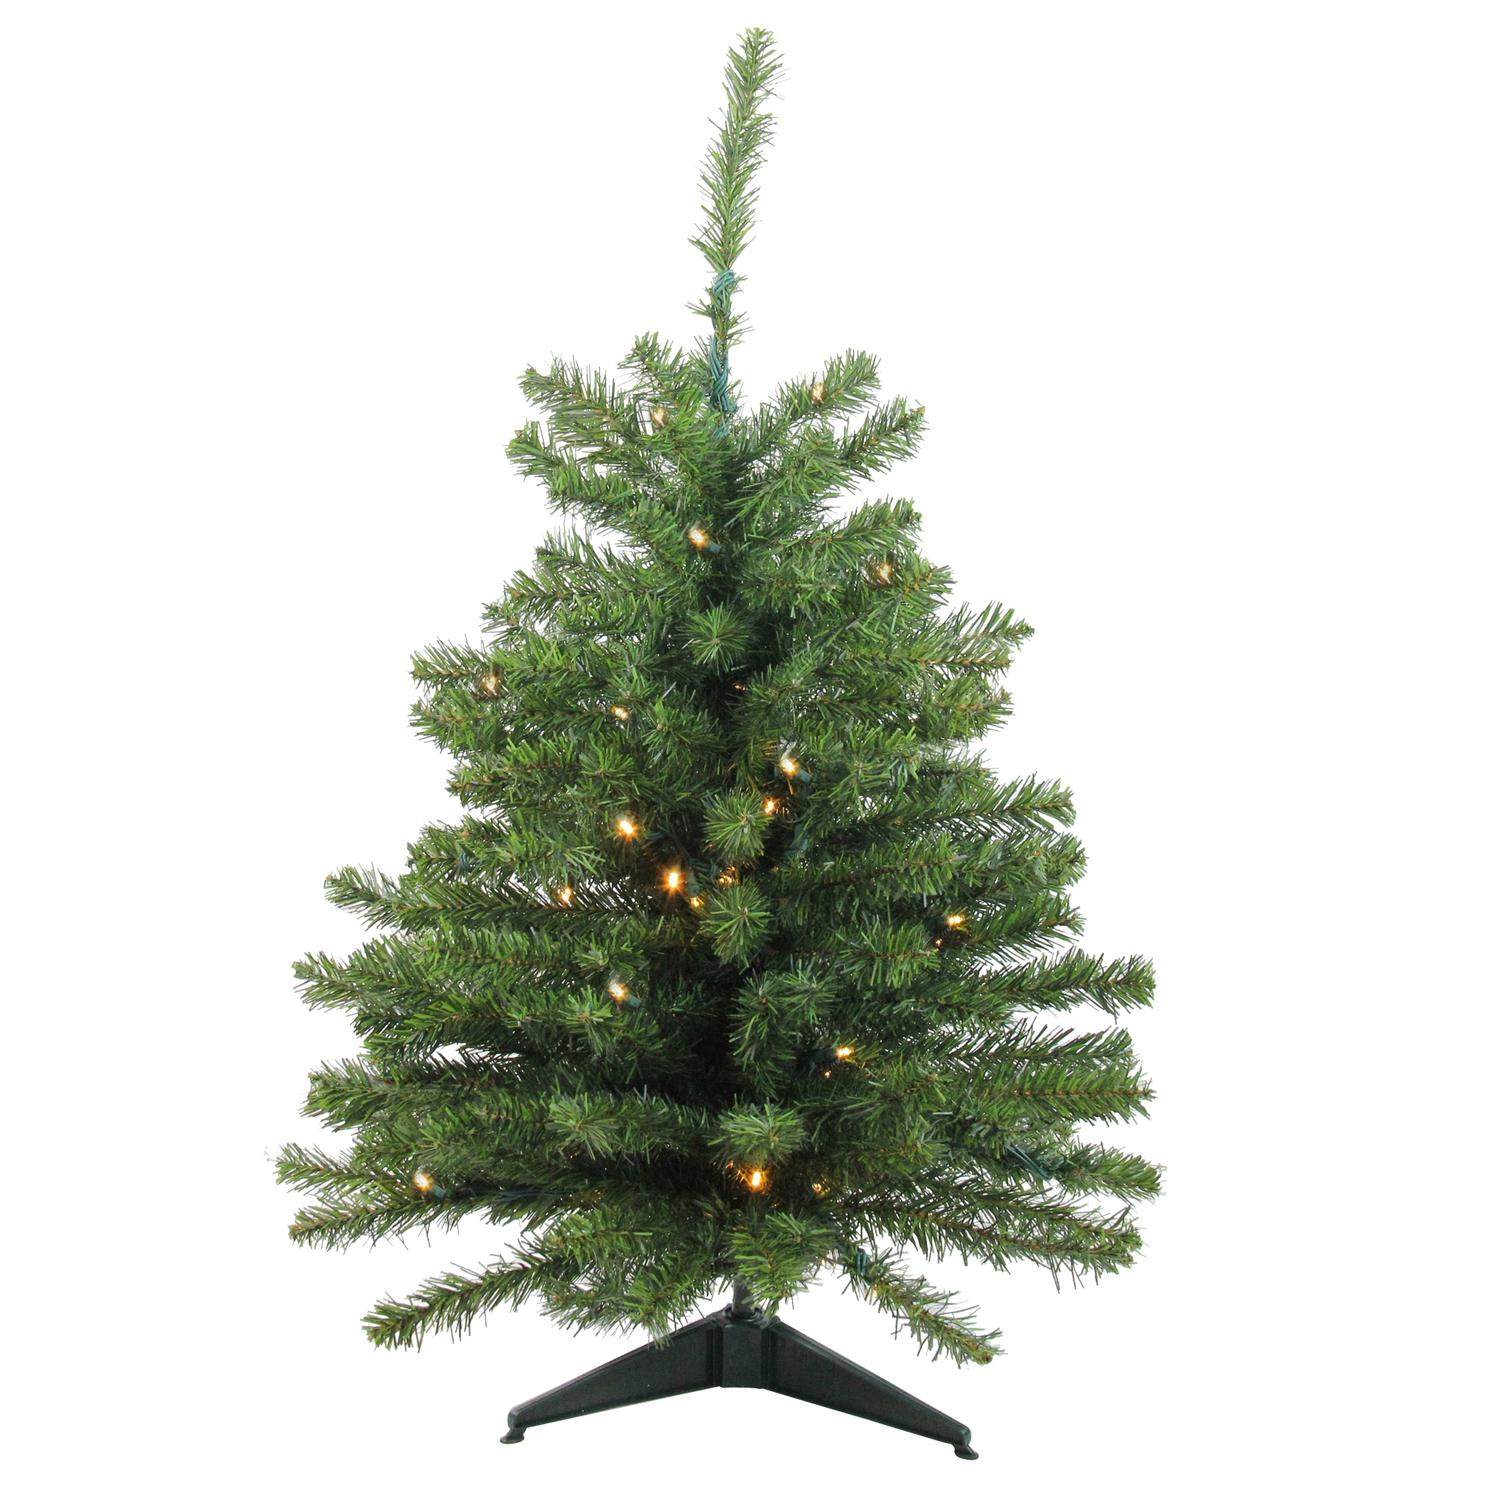 Darice 3' Pre - Lit LED Natural Two - Tone Pine Artificial Christmas Tree  - Clear Lights